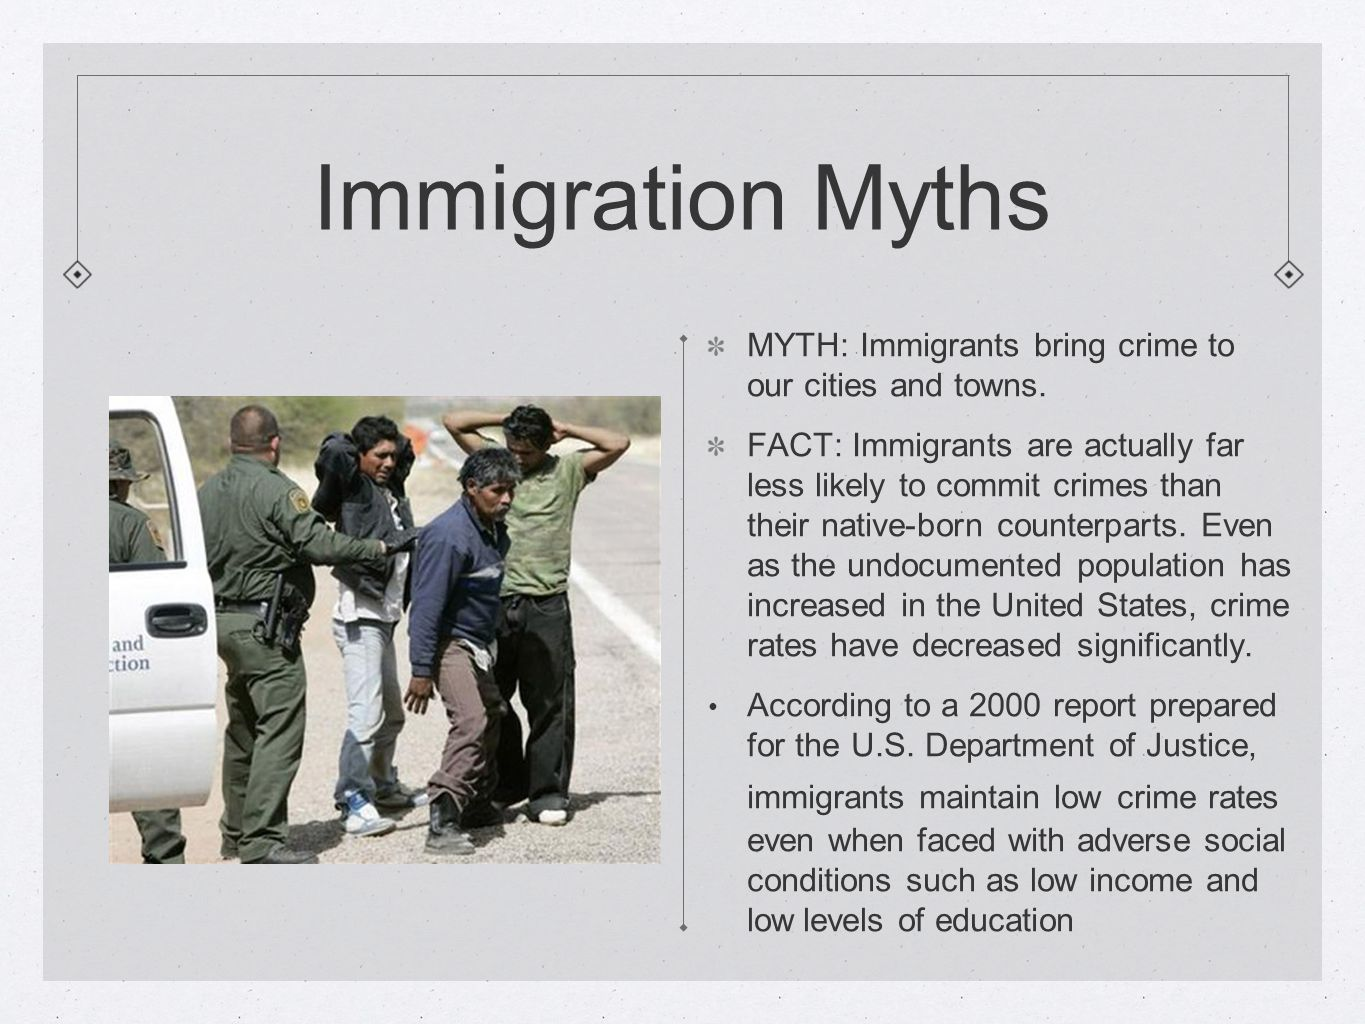 Immigration Myths MYTH: Immigrants bring crime to our cities and towns.